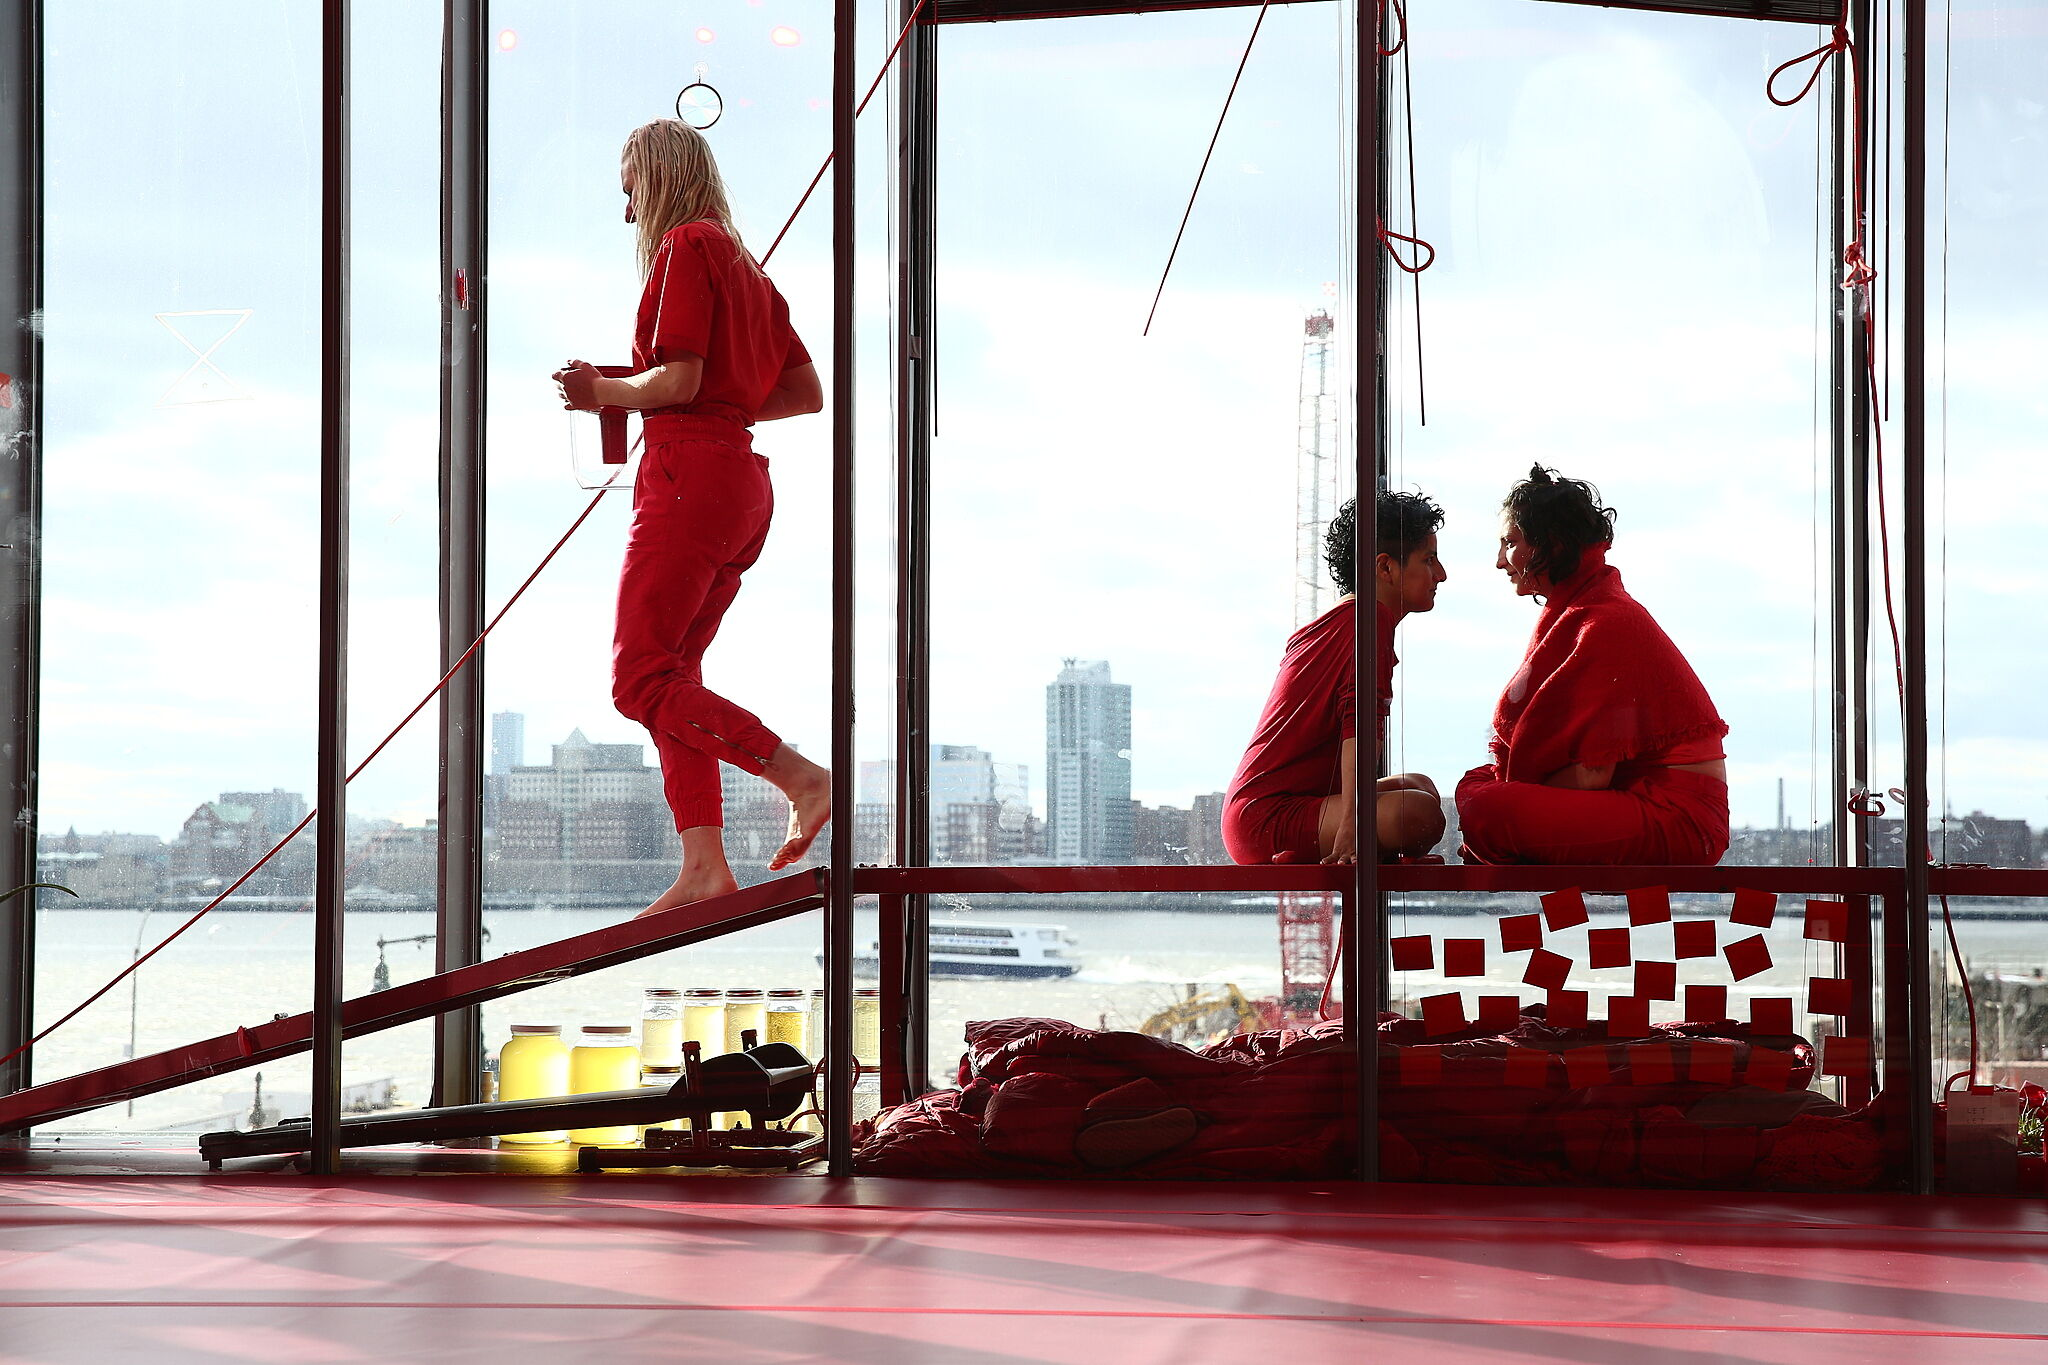 MPA, Amapola Prada and Elizabeth Marcus-Sonenberg, in the performance Orbit (part of the exhibition RED IN VIEW)